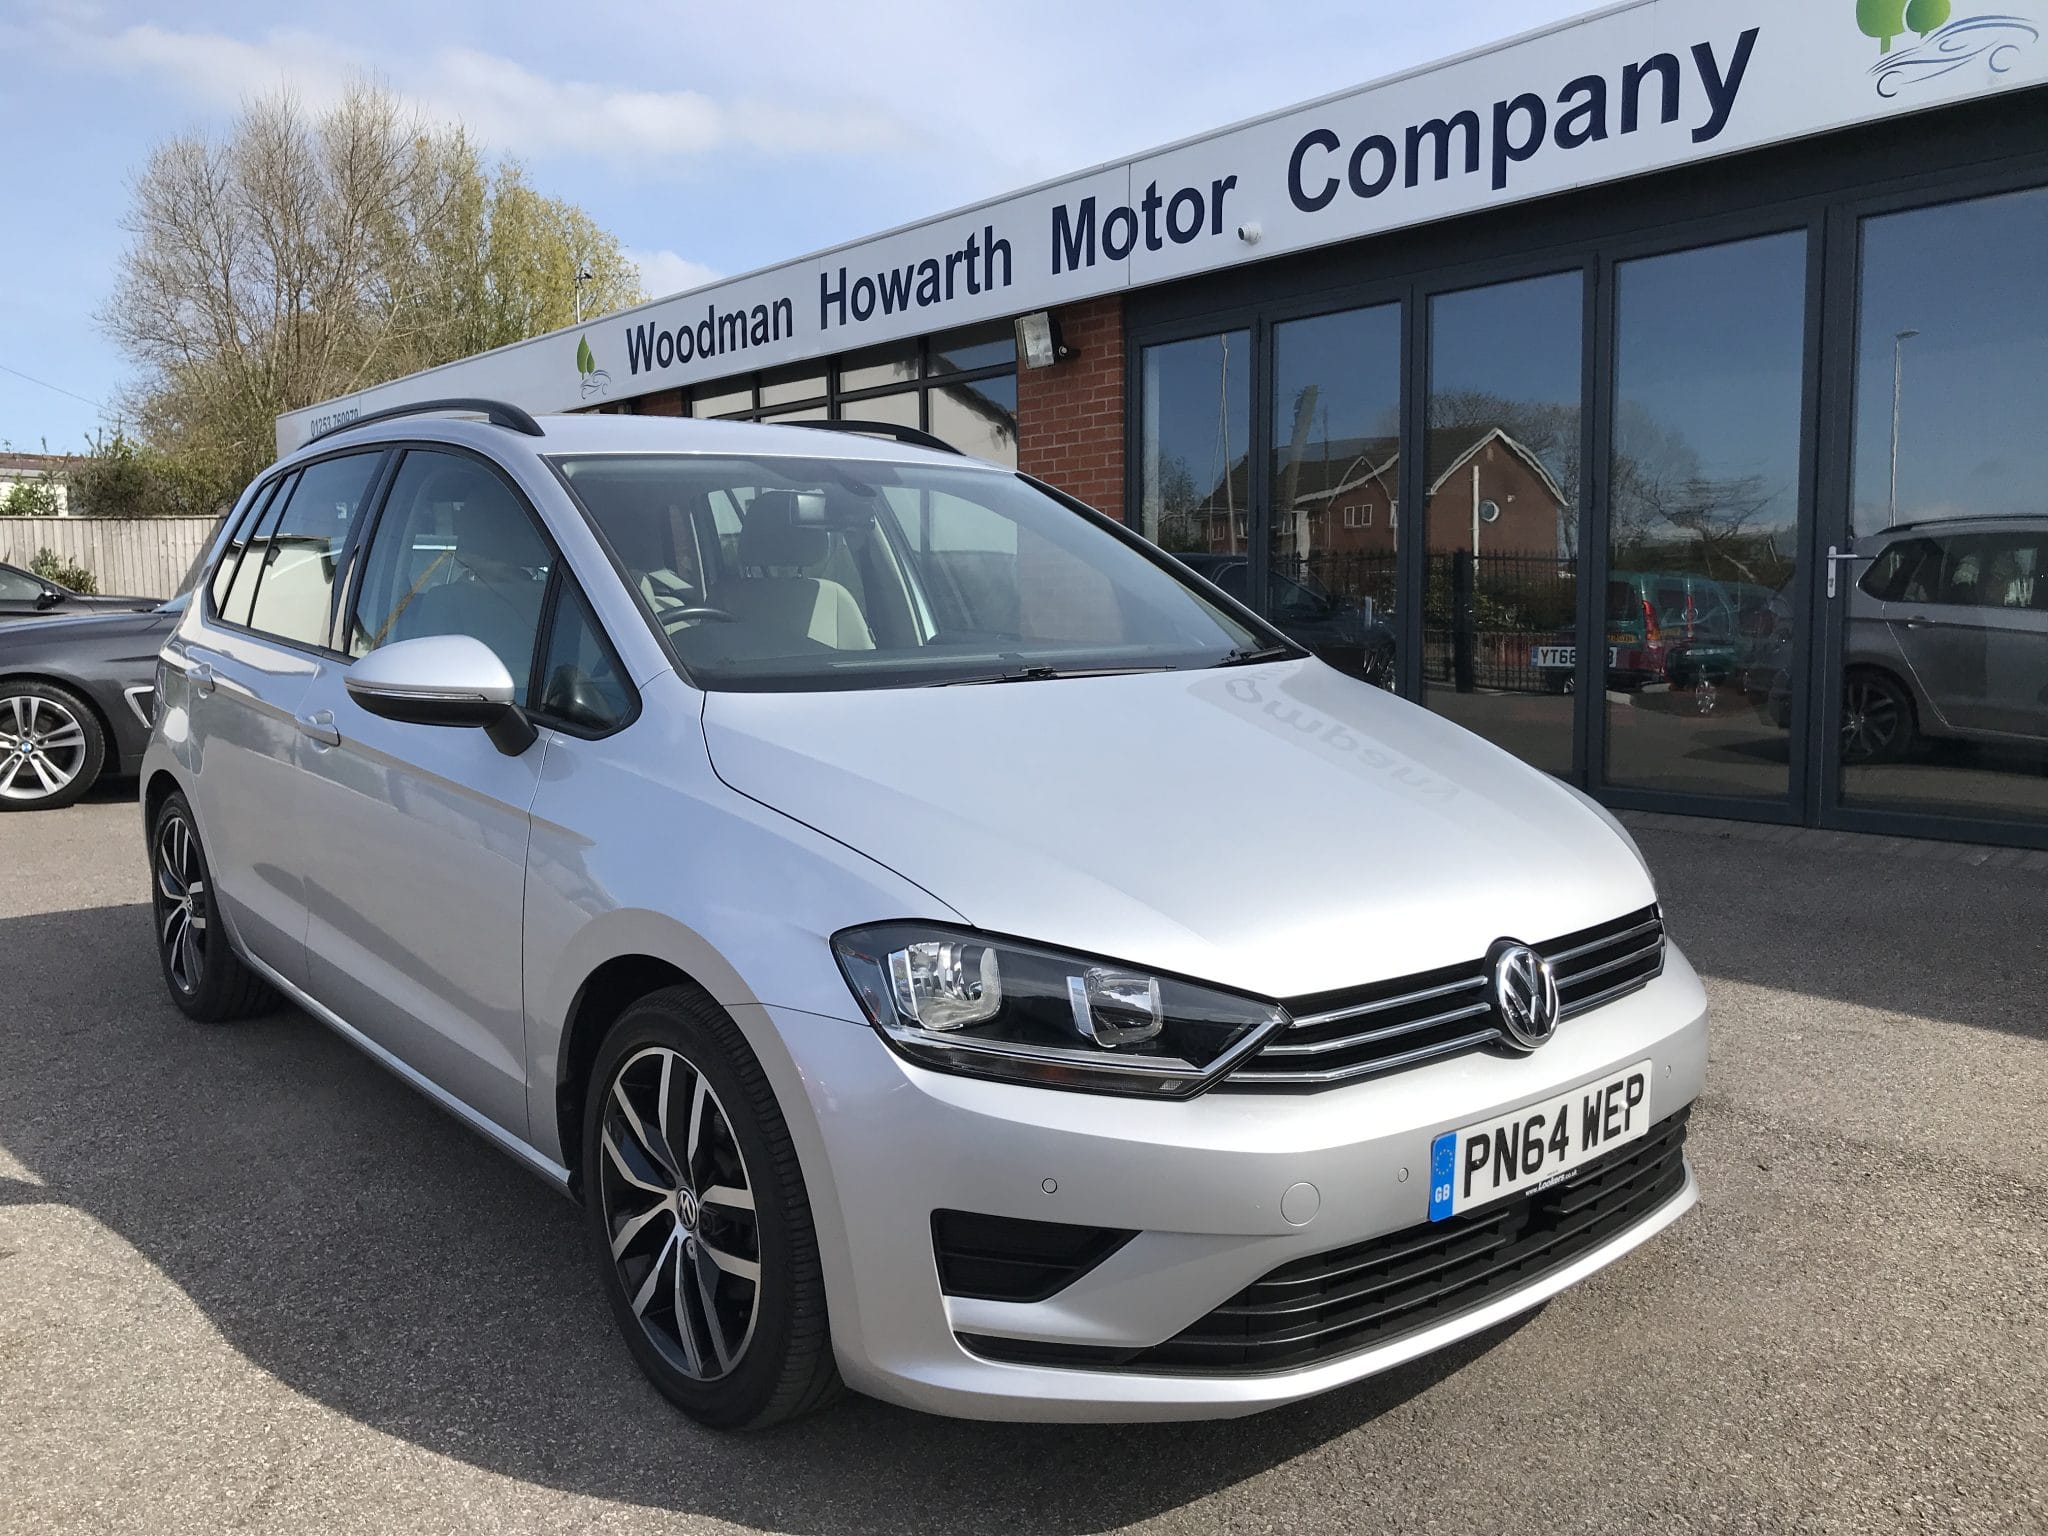 2014 64 VOLKSWAGEN GOLF SV 1.6 TDI SE TECH DSG AUTO 110BHP 1 Previous Owner FSH ONLY 28K Mls